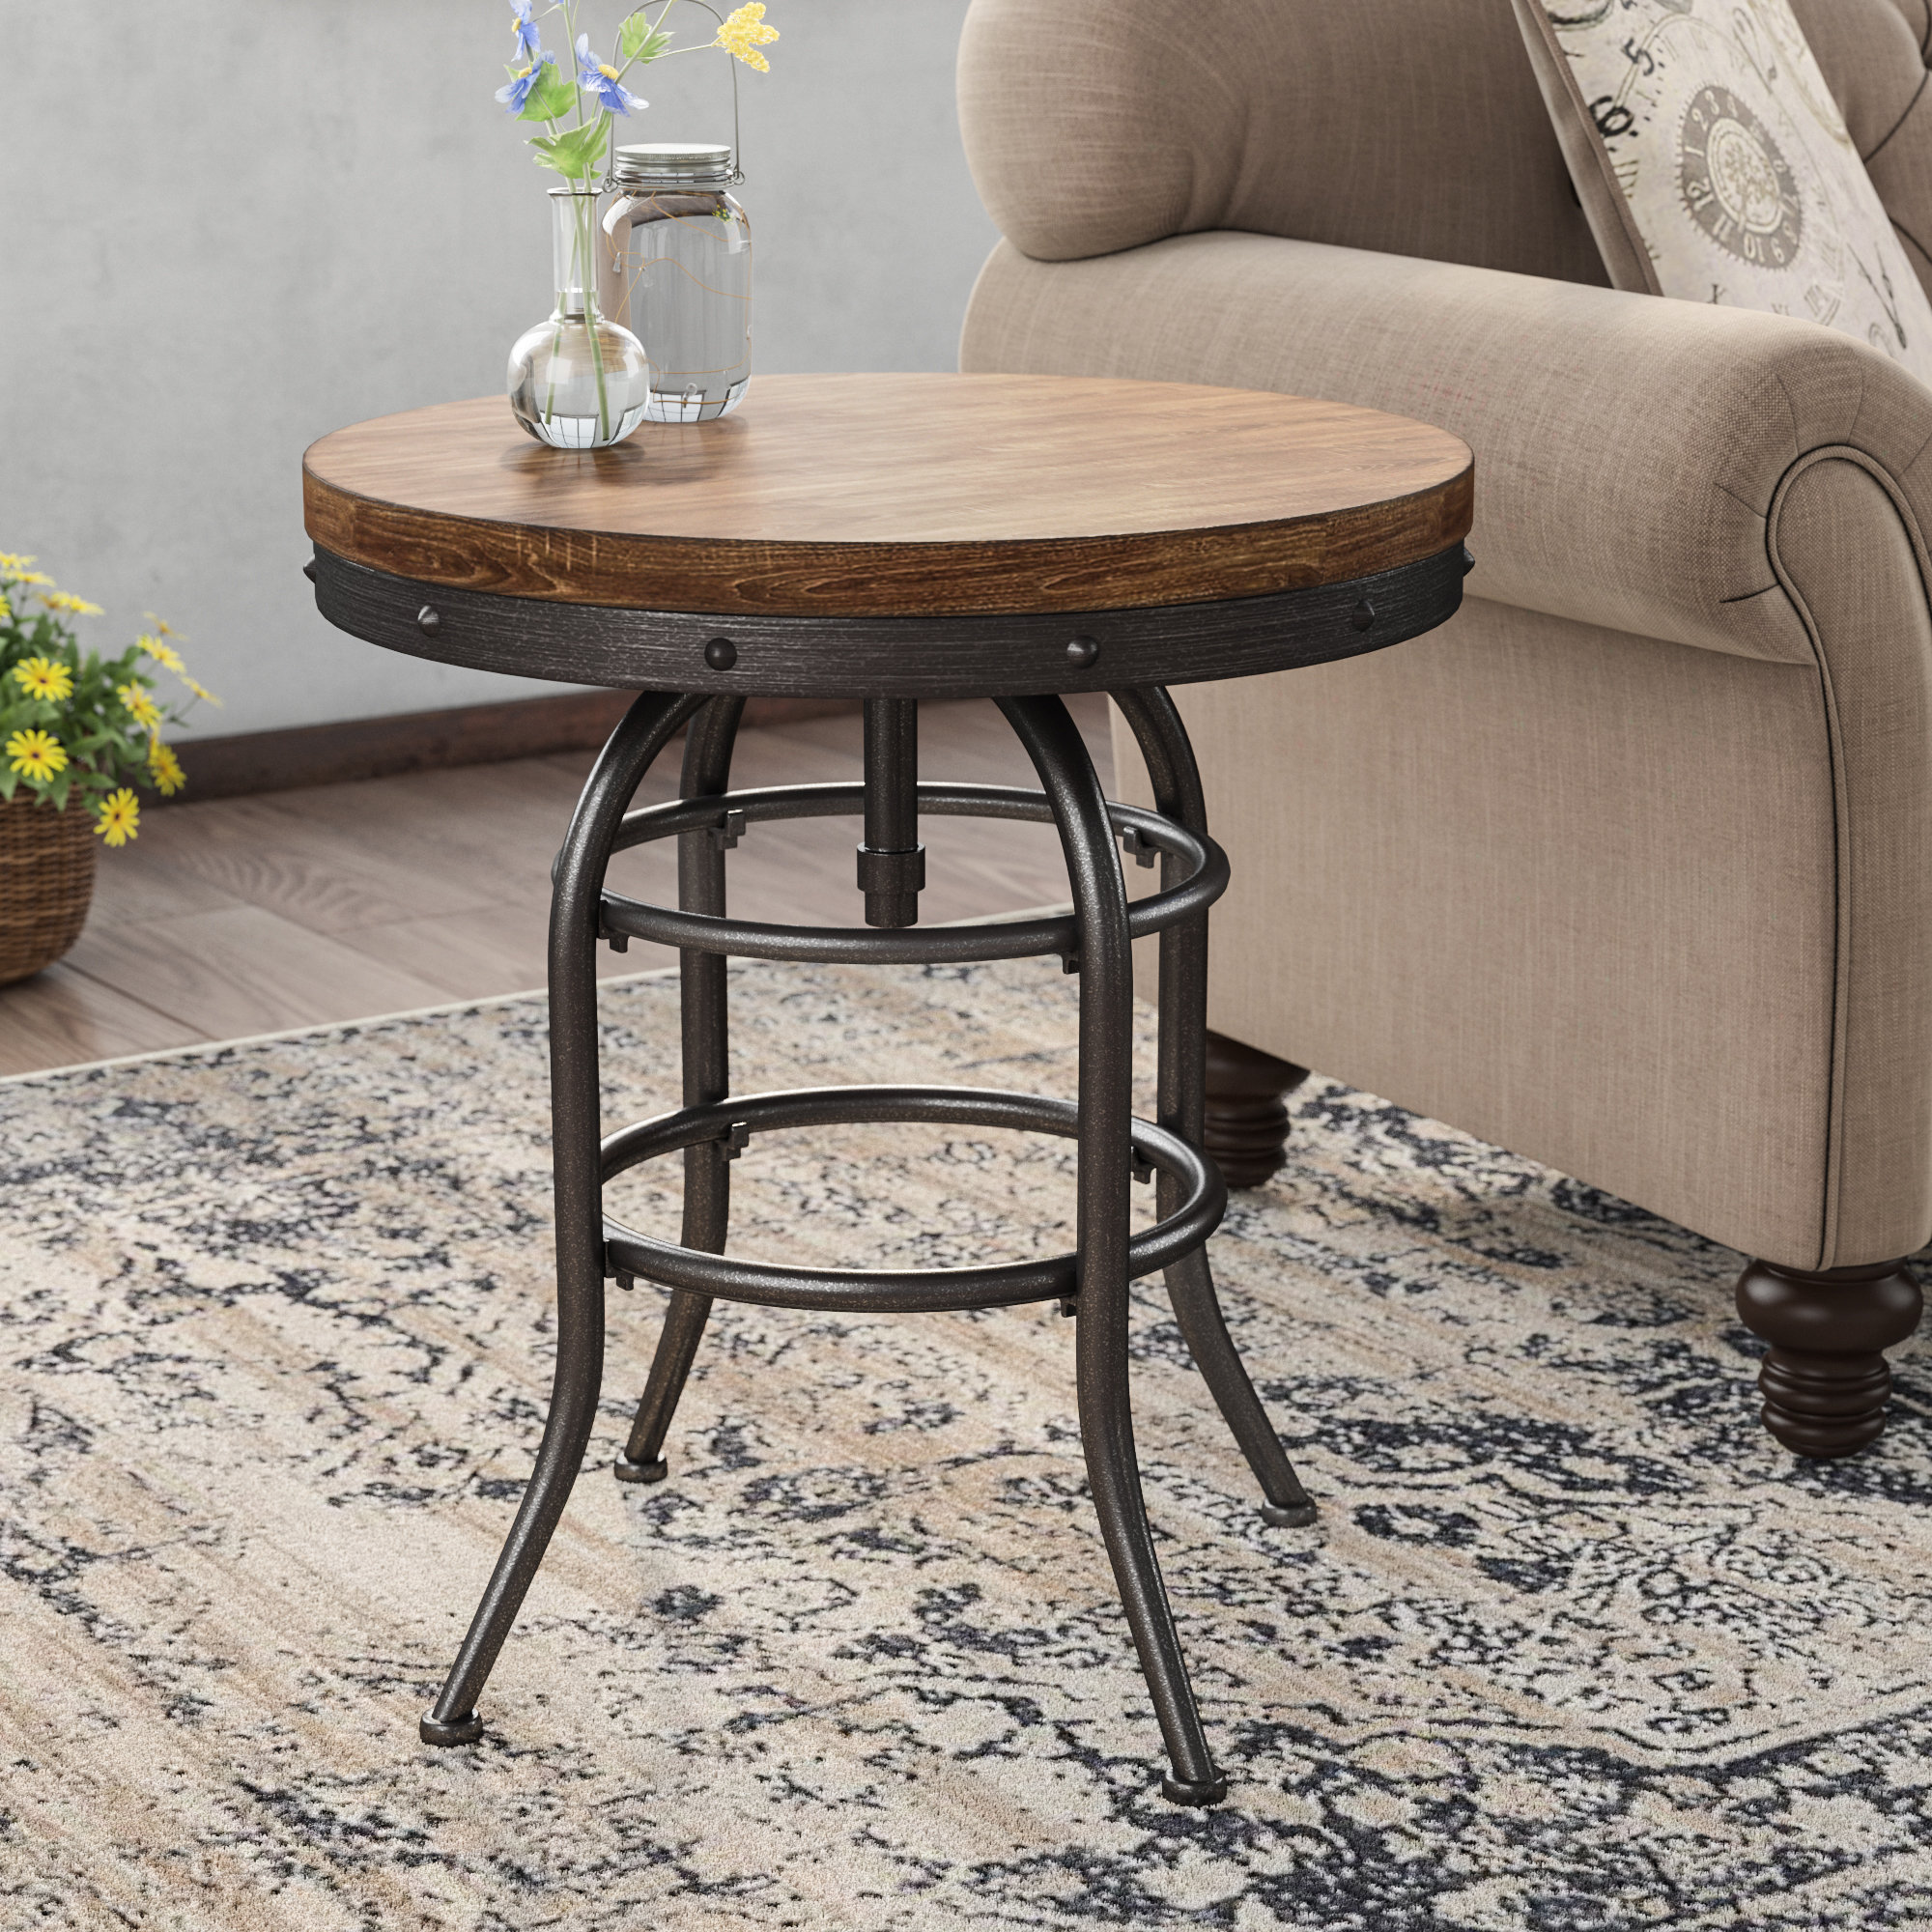 laurel foundry modern farmhouse likens end table reviews accent with barn door wooden and chairs nautical dining room chandelier white couch slipcovers black half moon interior